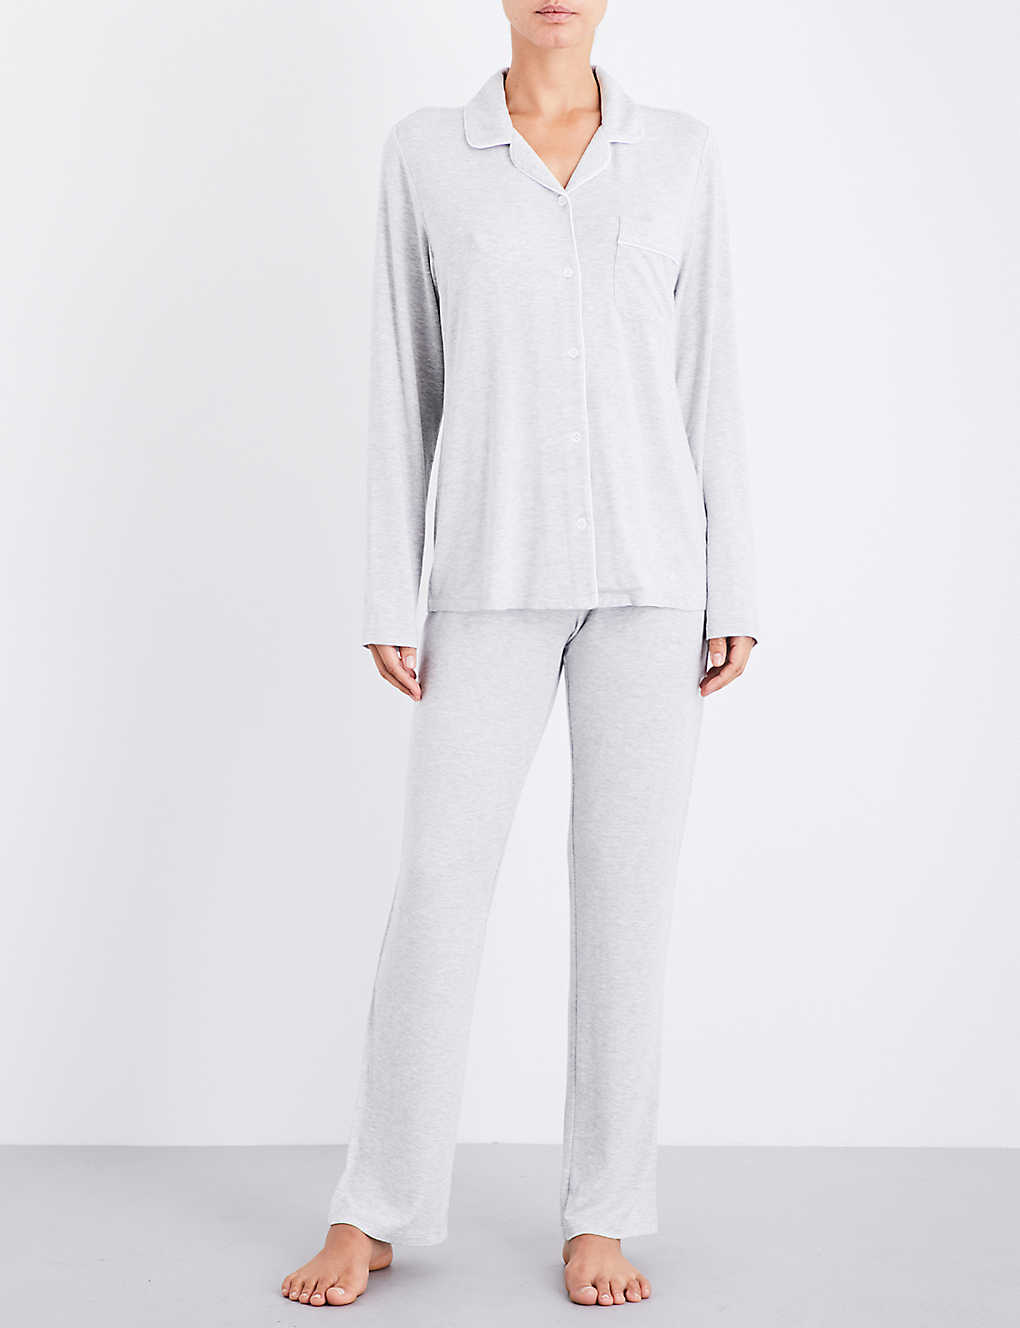 21deede024ff THE WHITE COMPANY - Contrast-piping jersey pyjama set